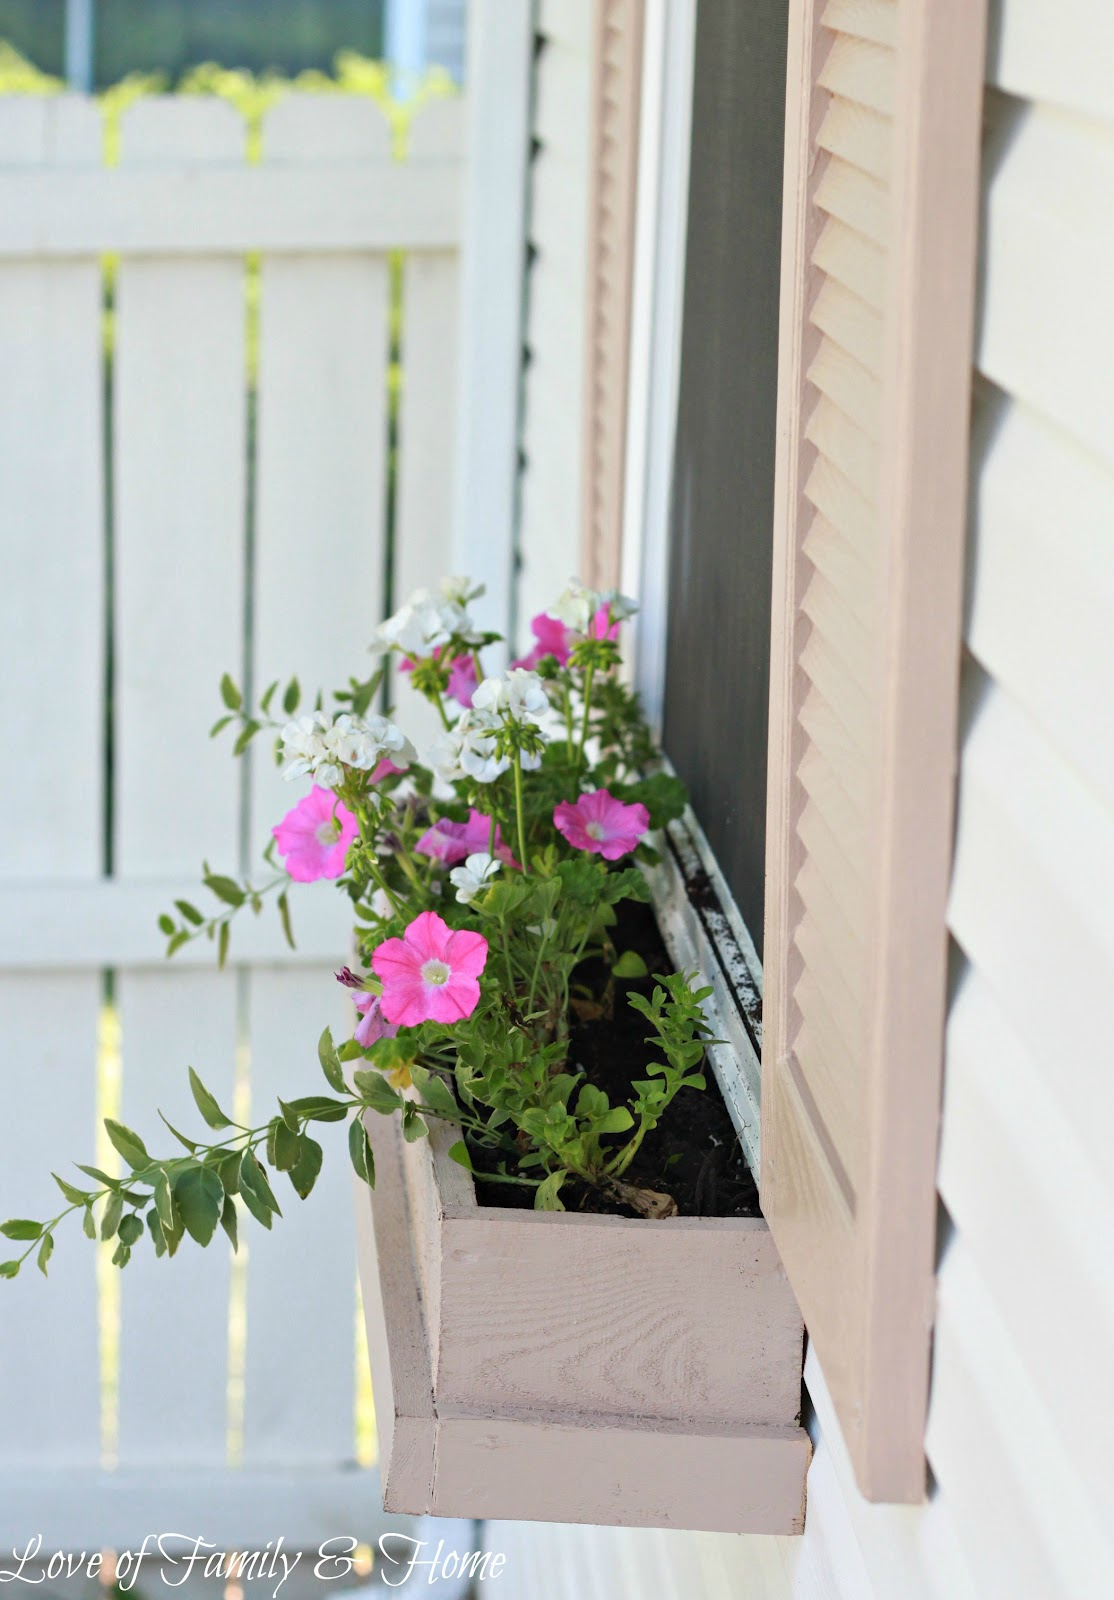 window boxes on pinterest window boxes shutters and flower boxes. Black Bedroom Furniture Sets. Home Design Ideas